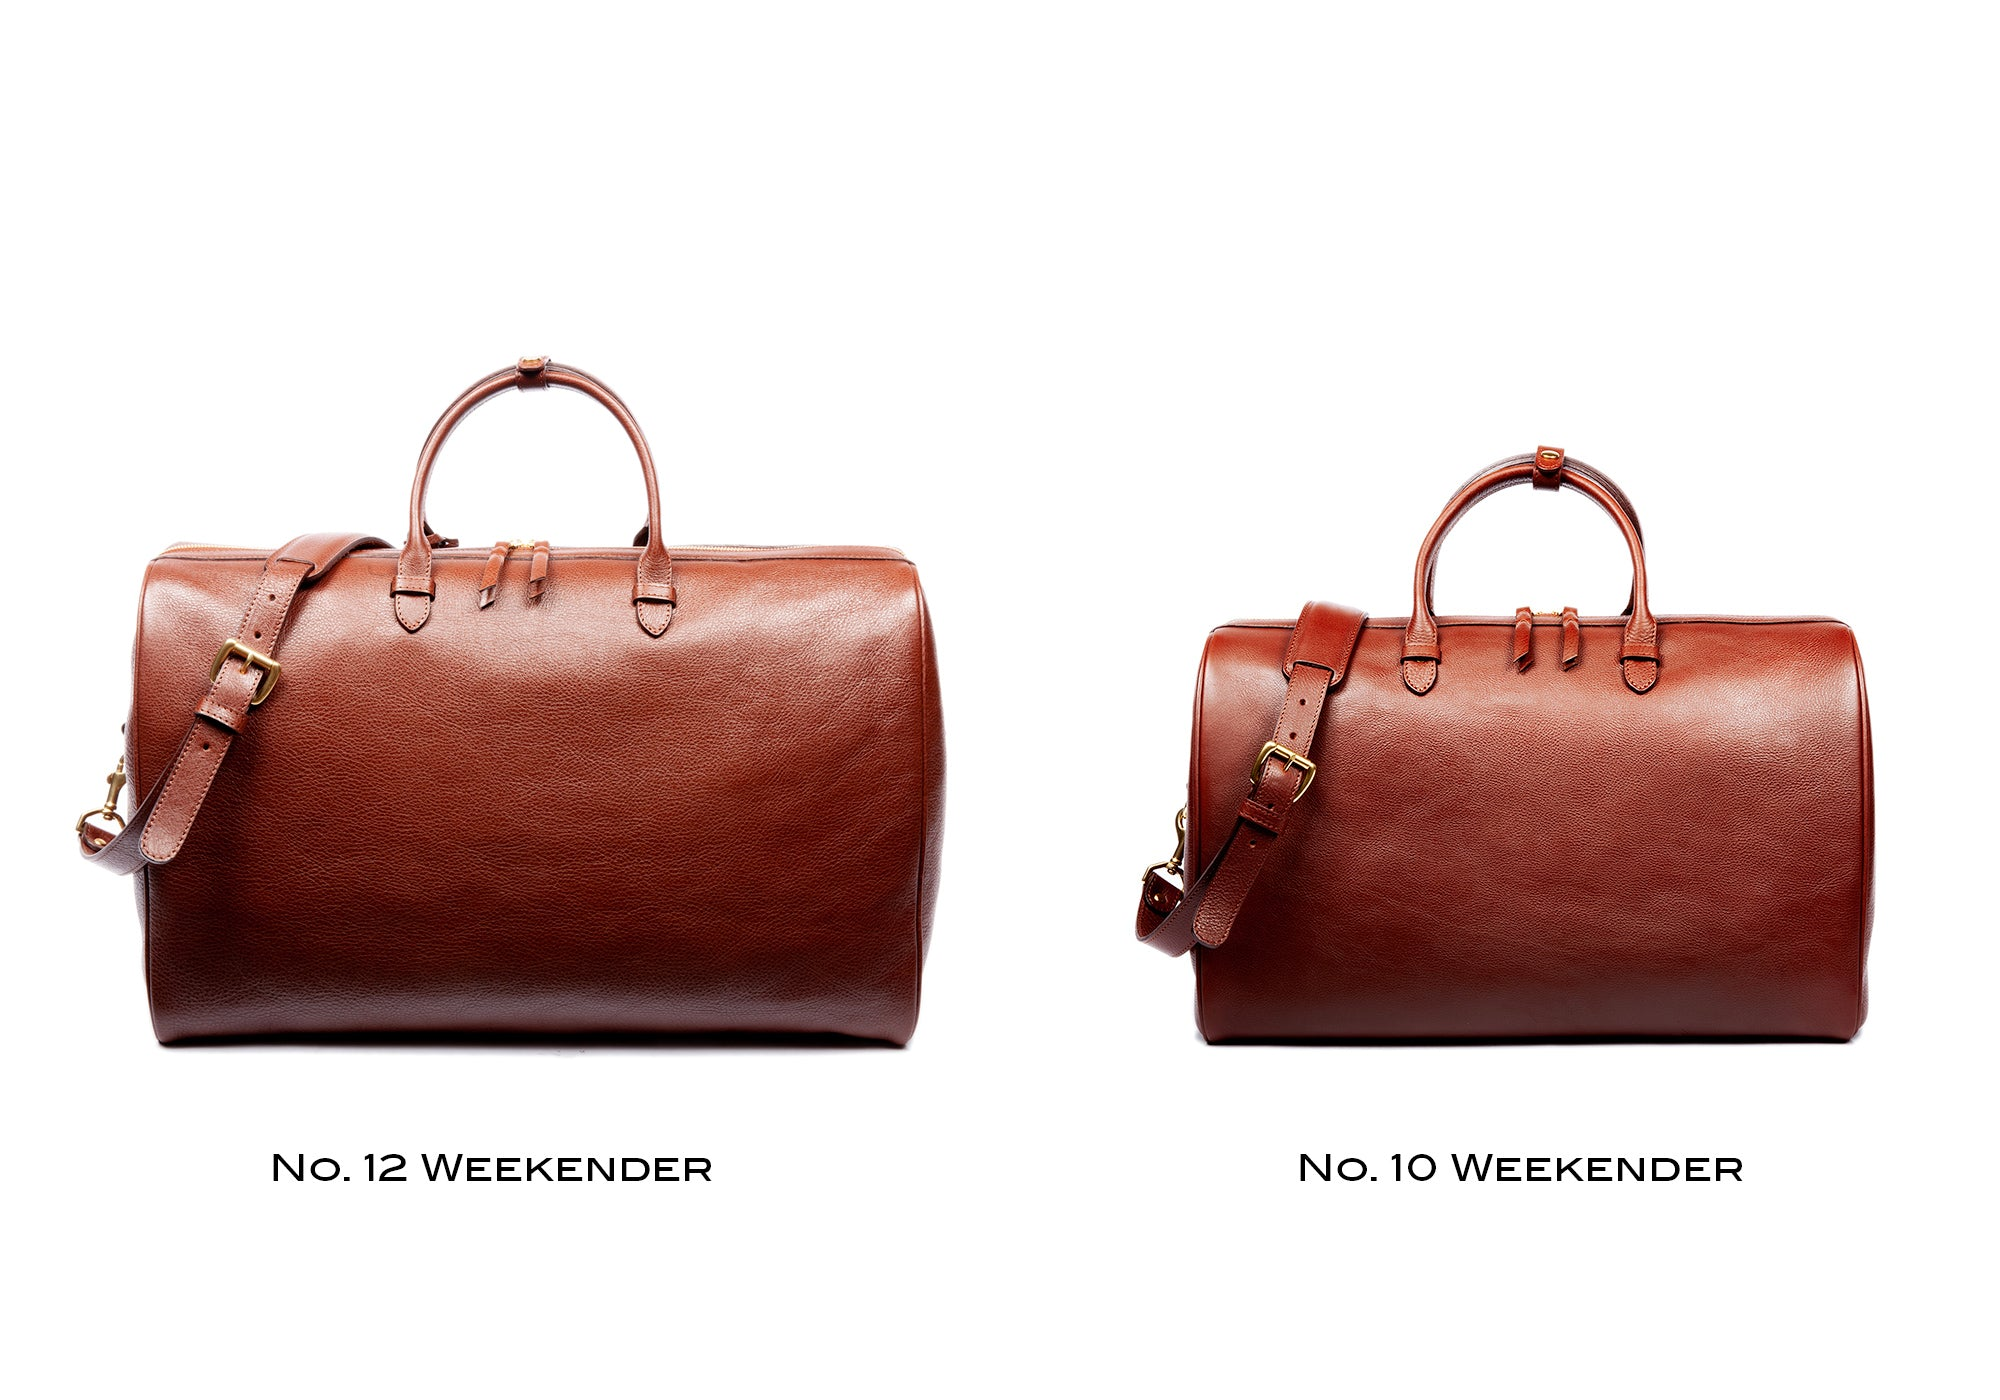 No. 10 Weekender Bag Lifestyle